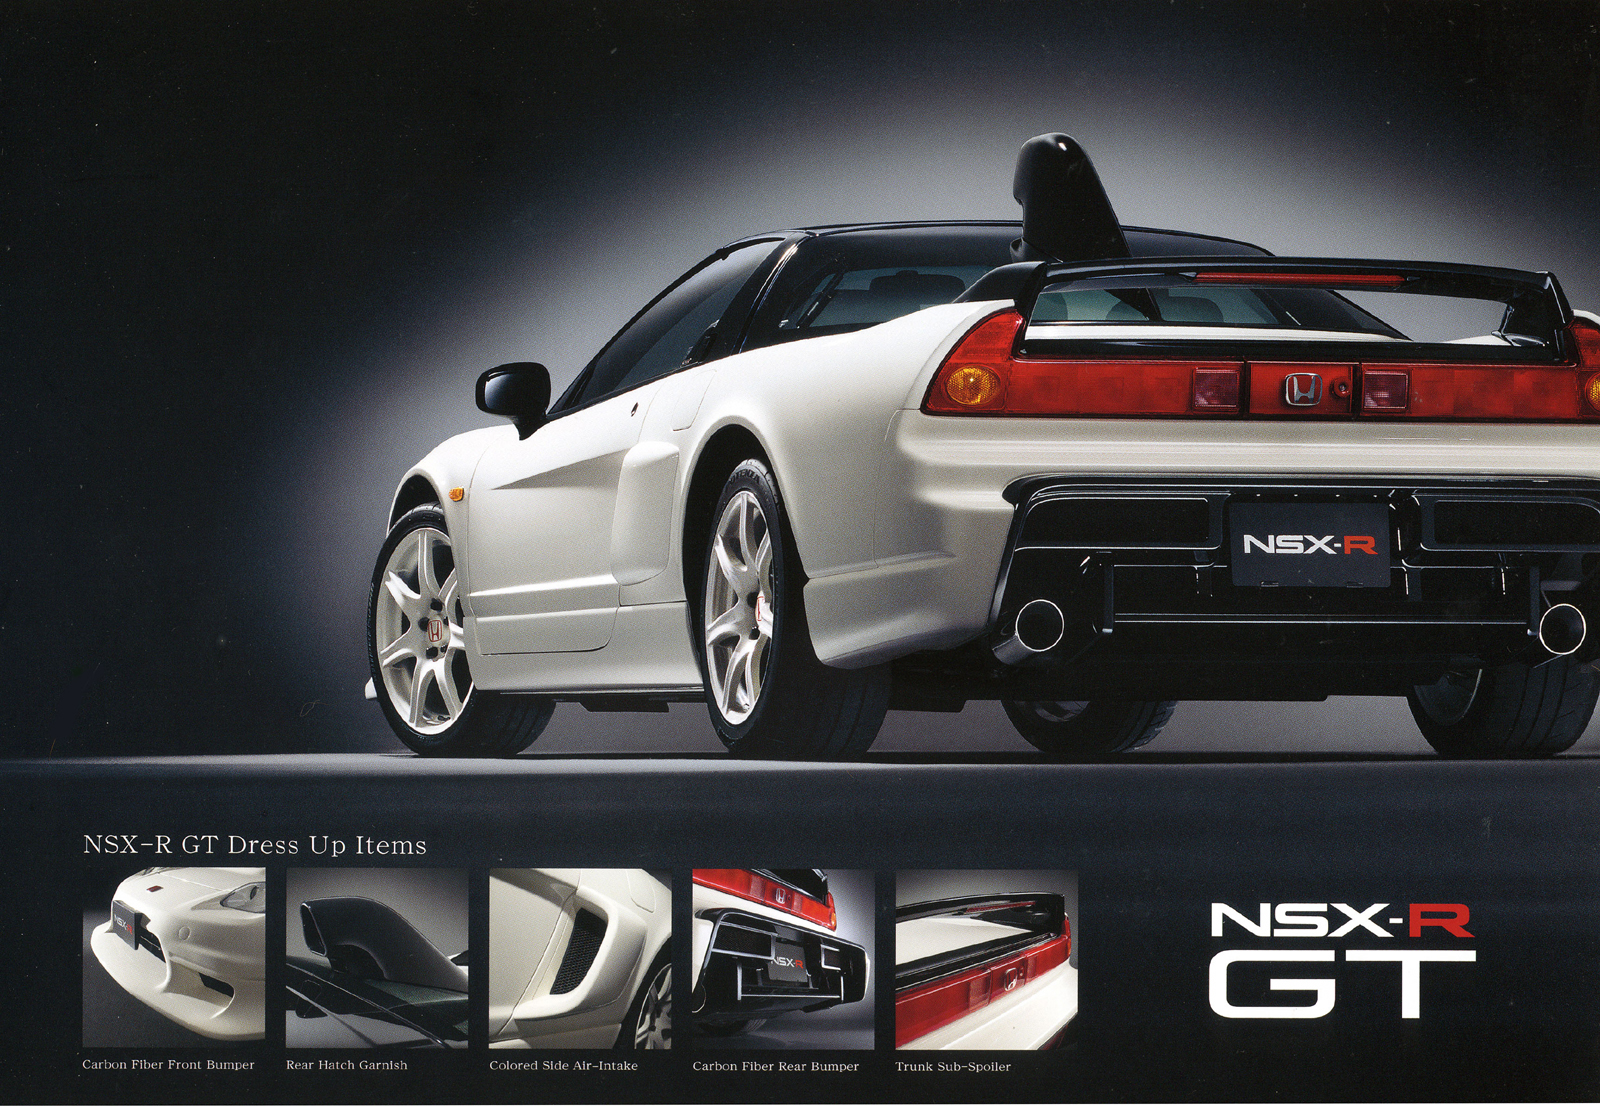 13449NSX_R_GT_Page_3 nsx r gt [archive] nsx prime  at edmiracle.co